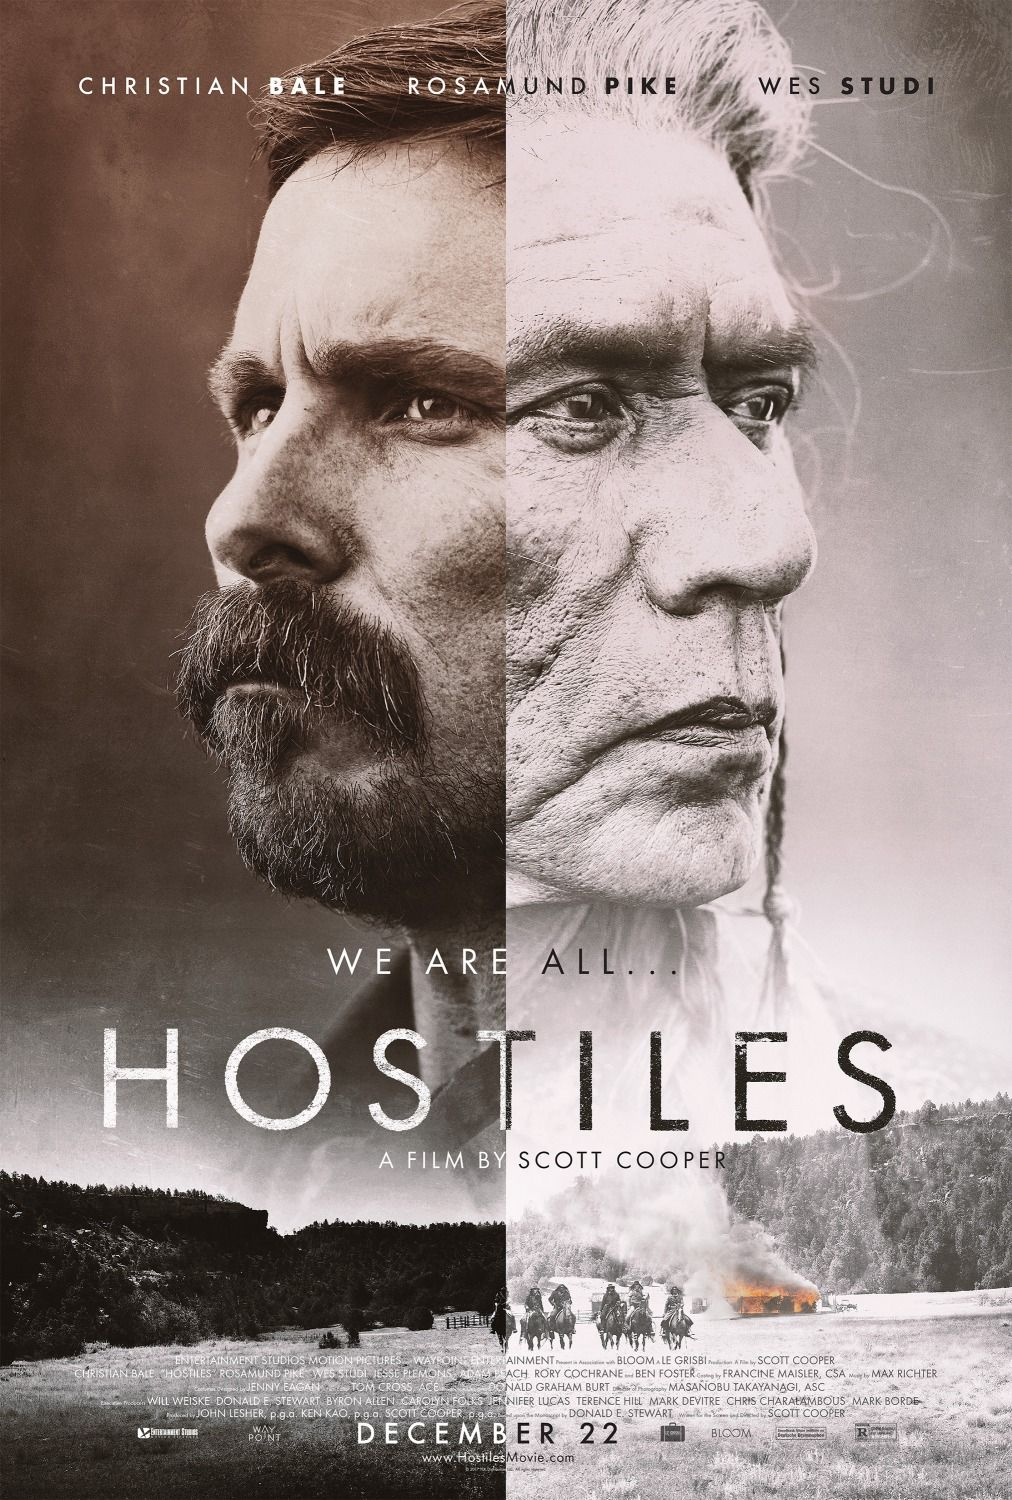 Hostiles | Movies | Hd movies online, Full movies download